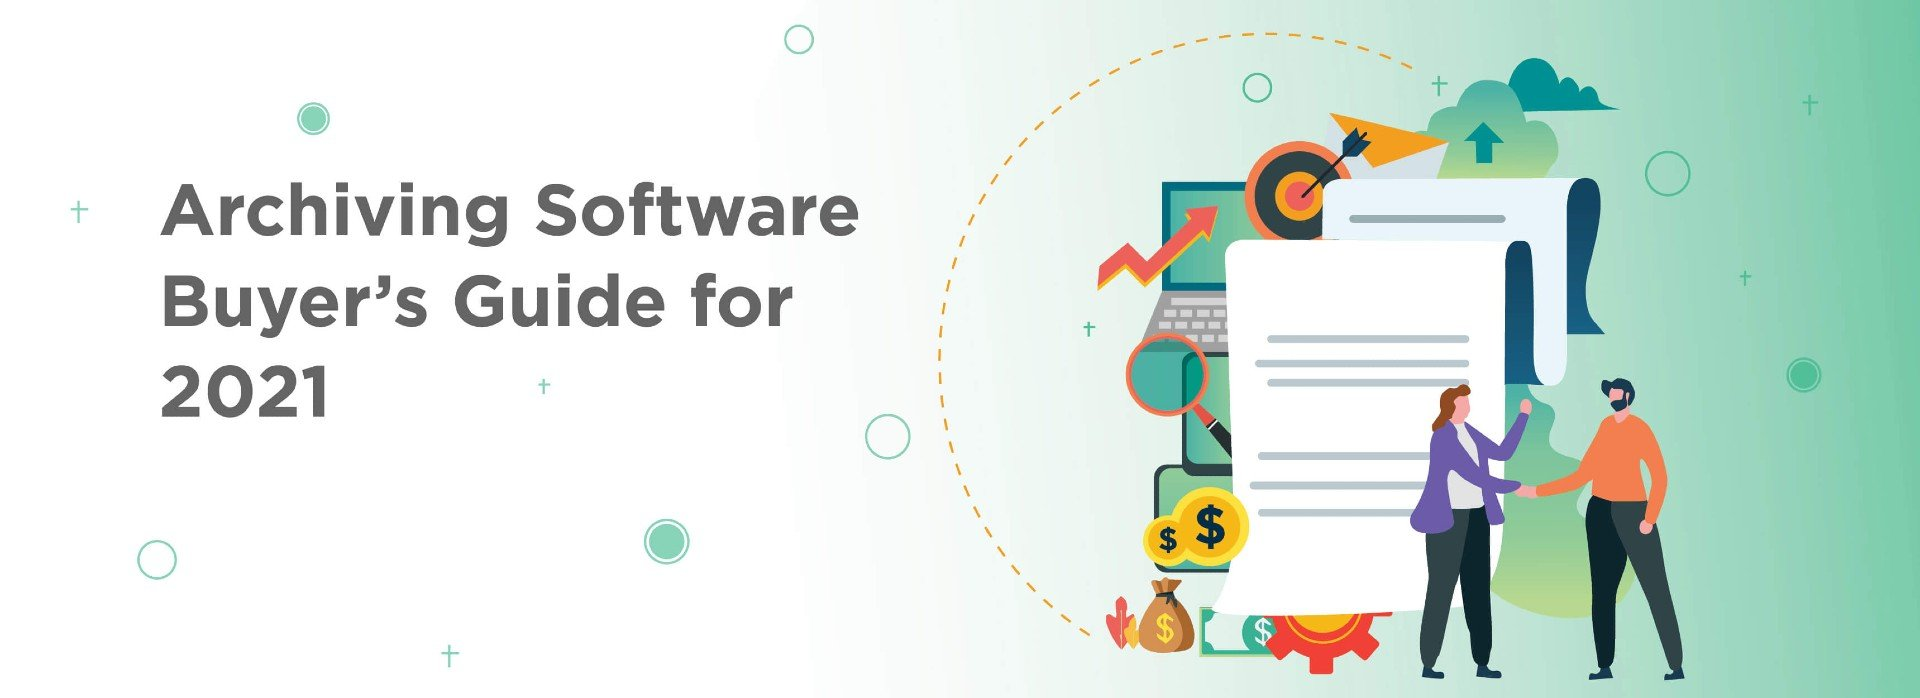 Archiving Software Buyer's Guide for 2021